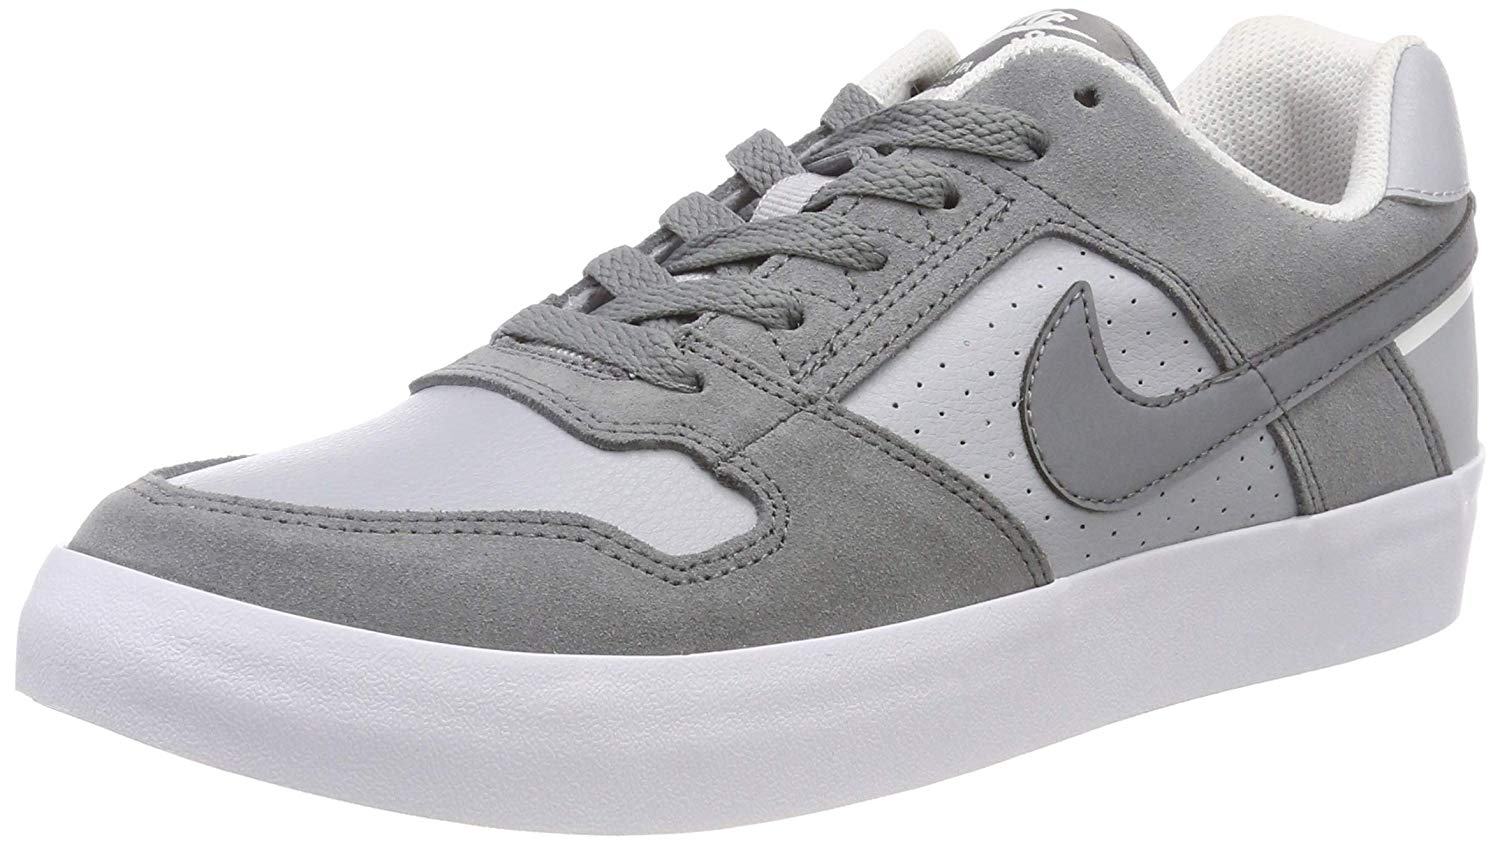 3ce4b1fdad05 Get Quotations · Nike Mens SB Delta Force Vulc Cool Grey Wolf Grey White  Size 10